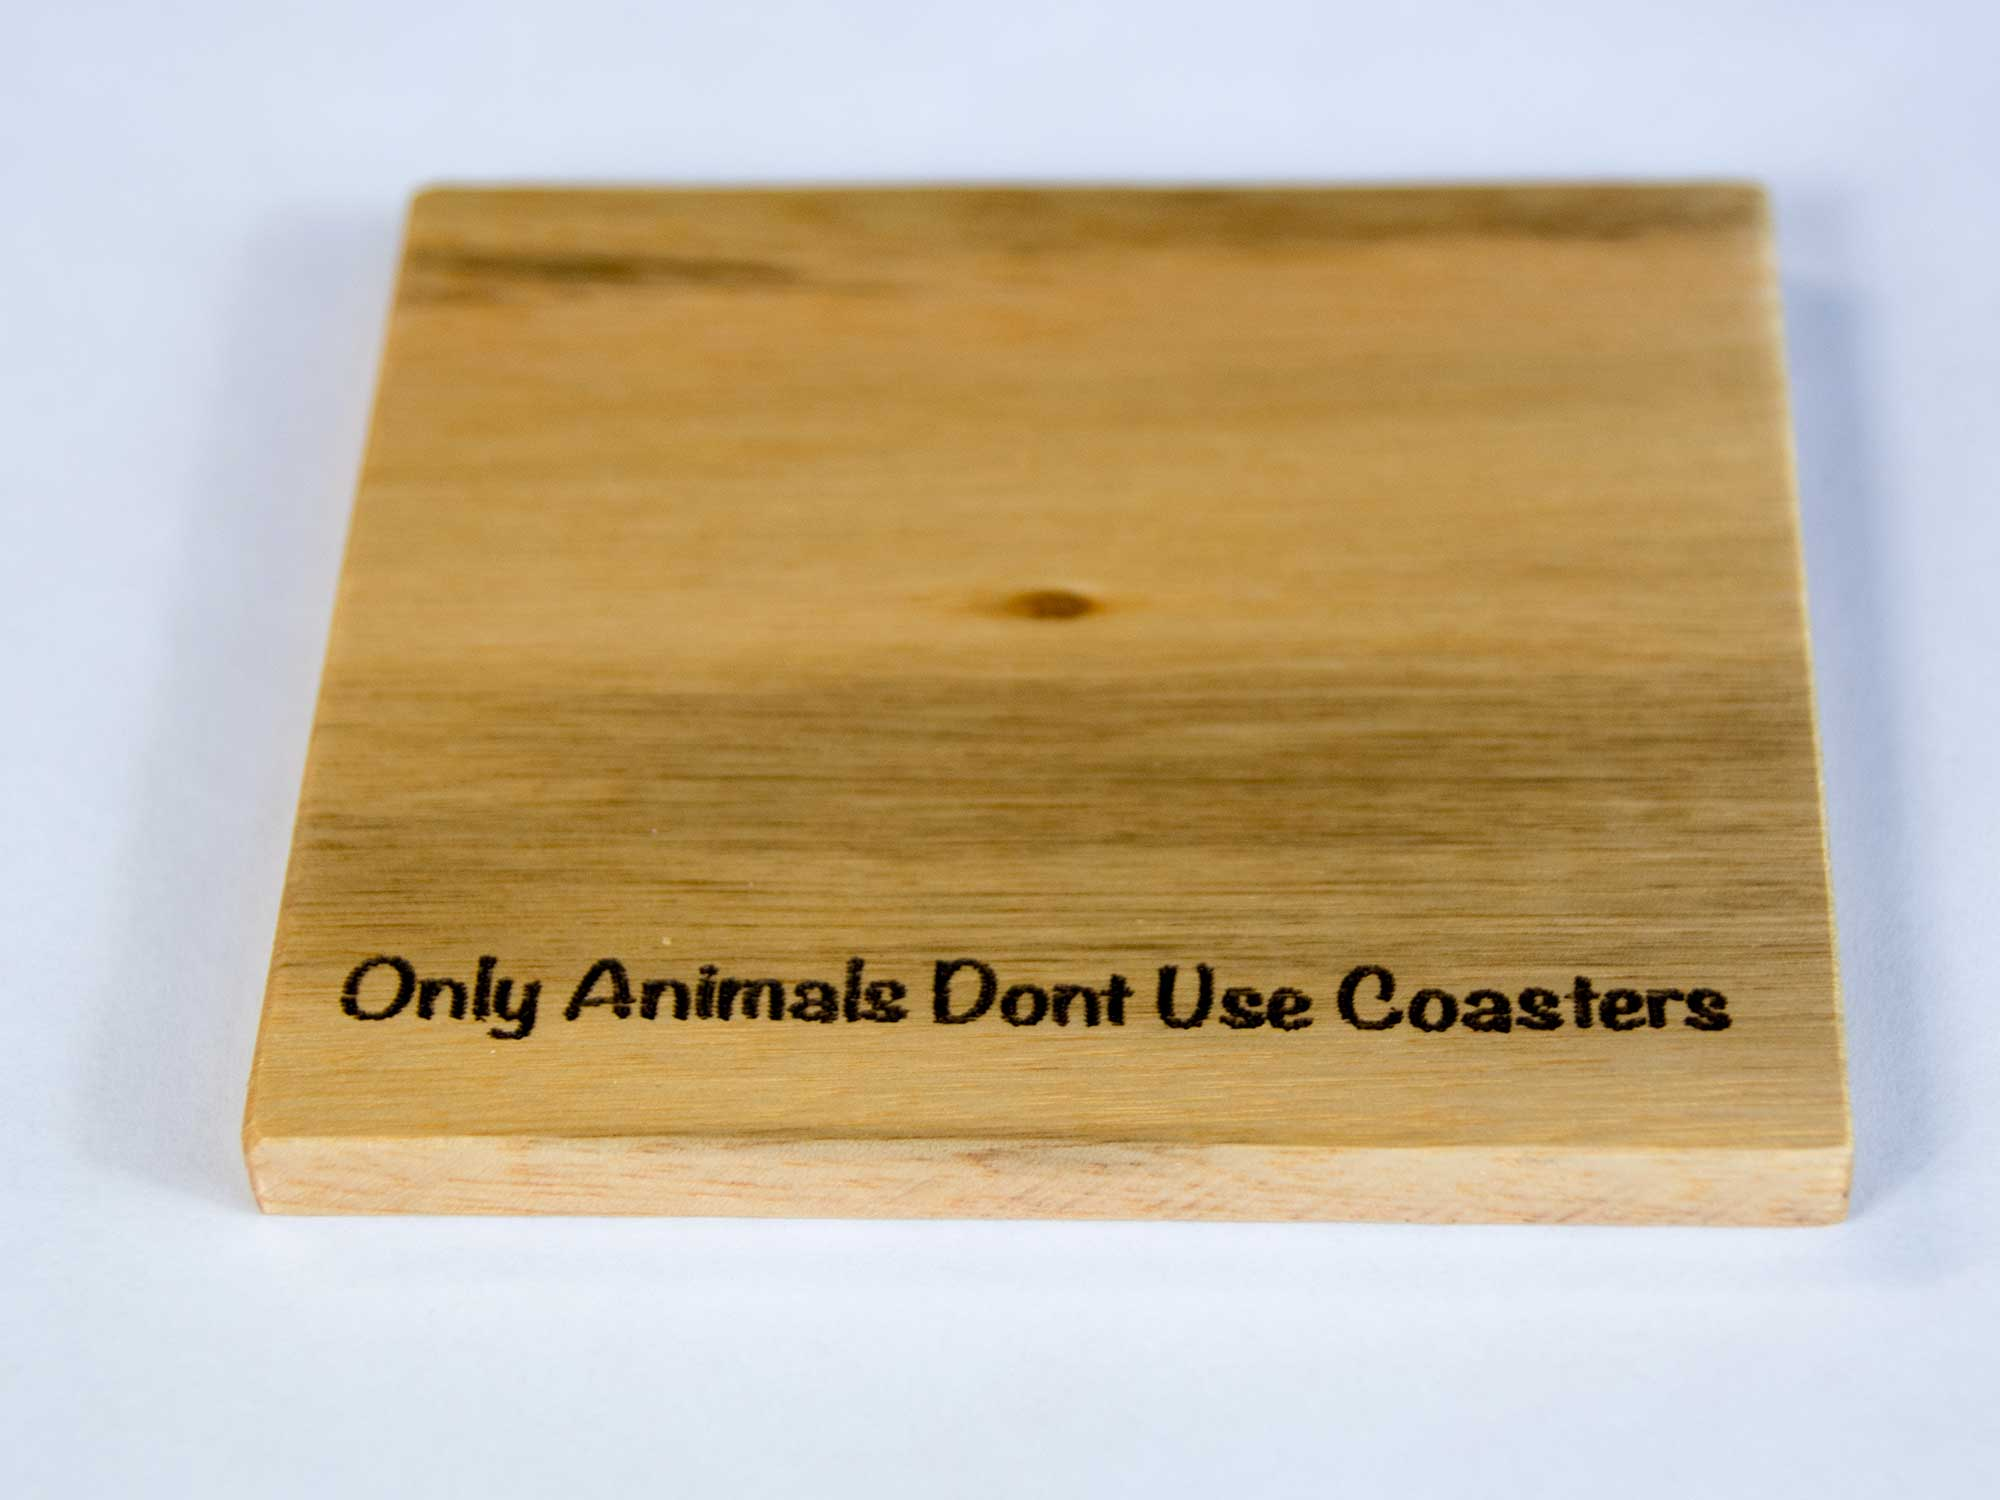 Only Animals Don't Use Coasters - Coasters (Tasmanian Blue Gum)